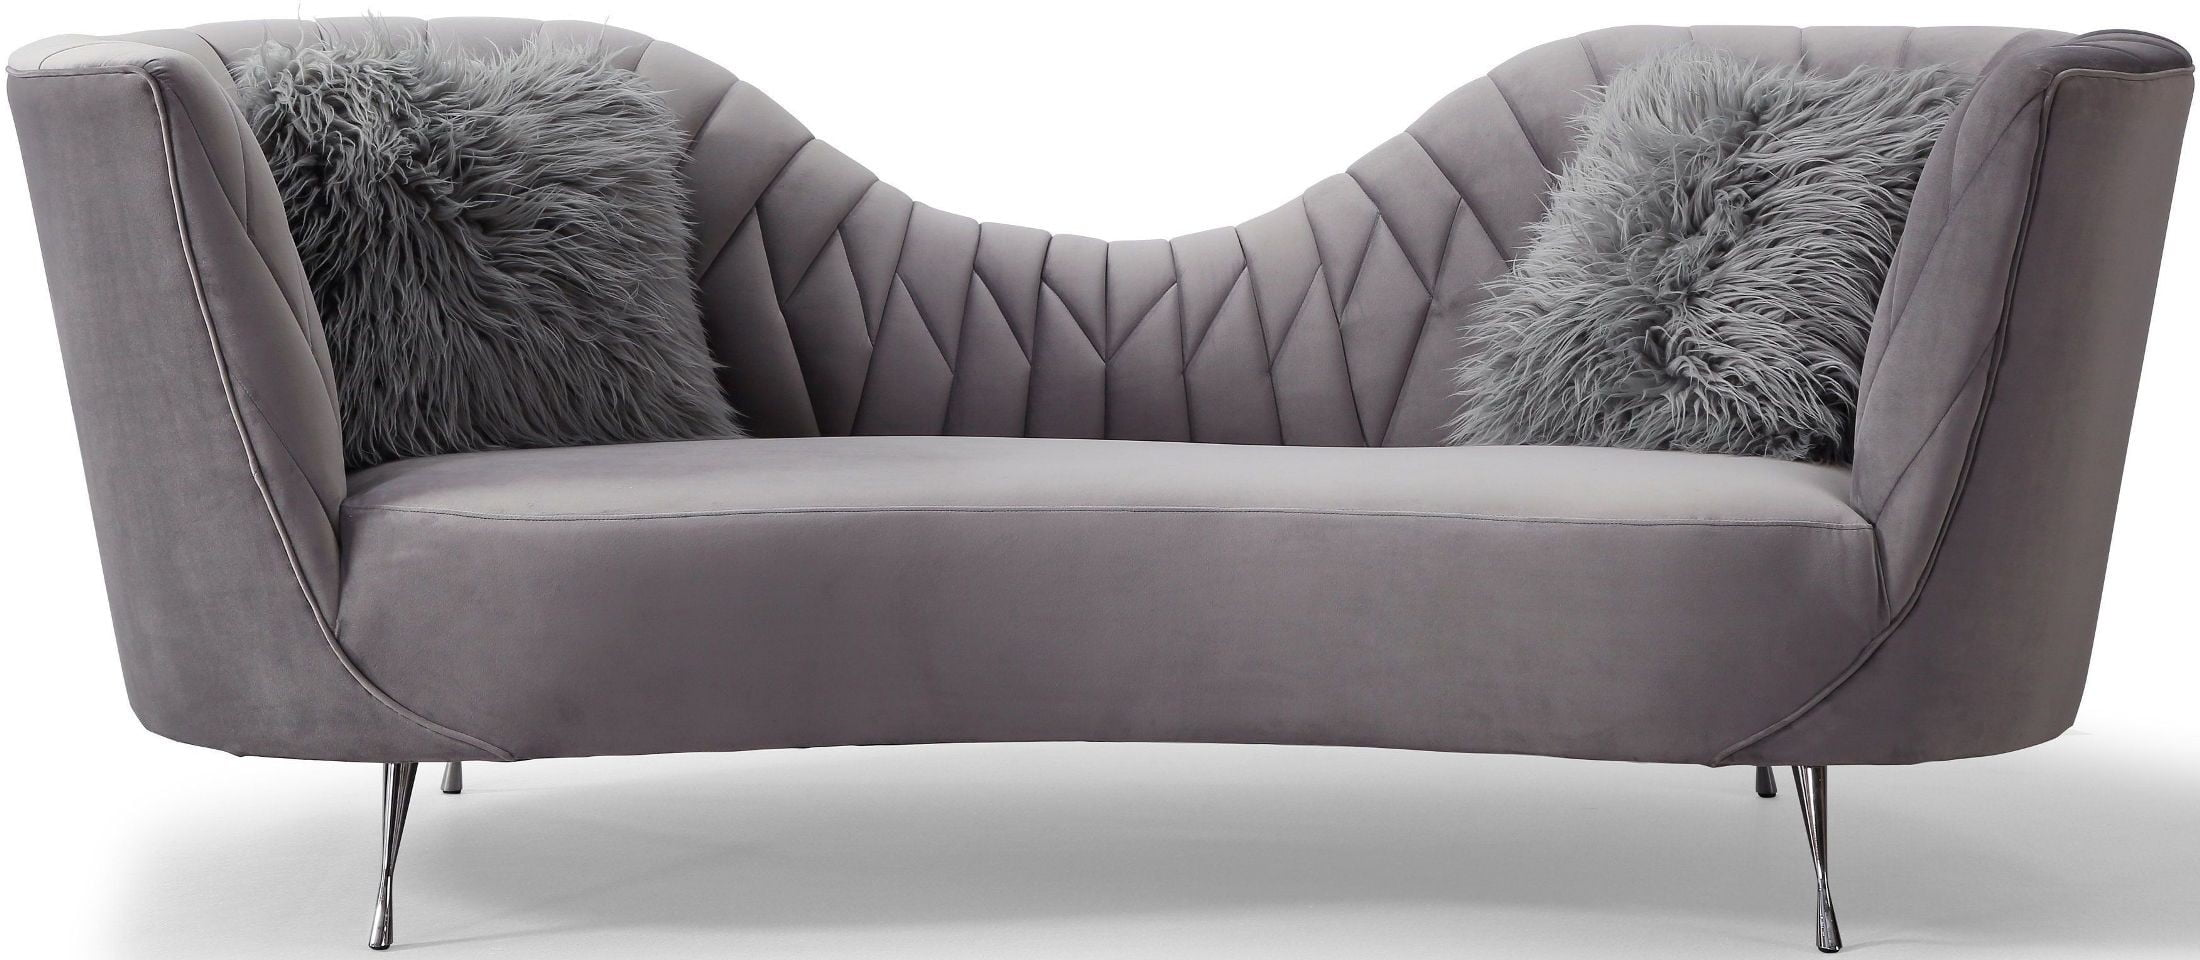 Eva Grey Velvet Sofa from TOV Furniture L6130